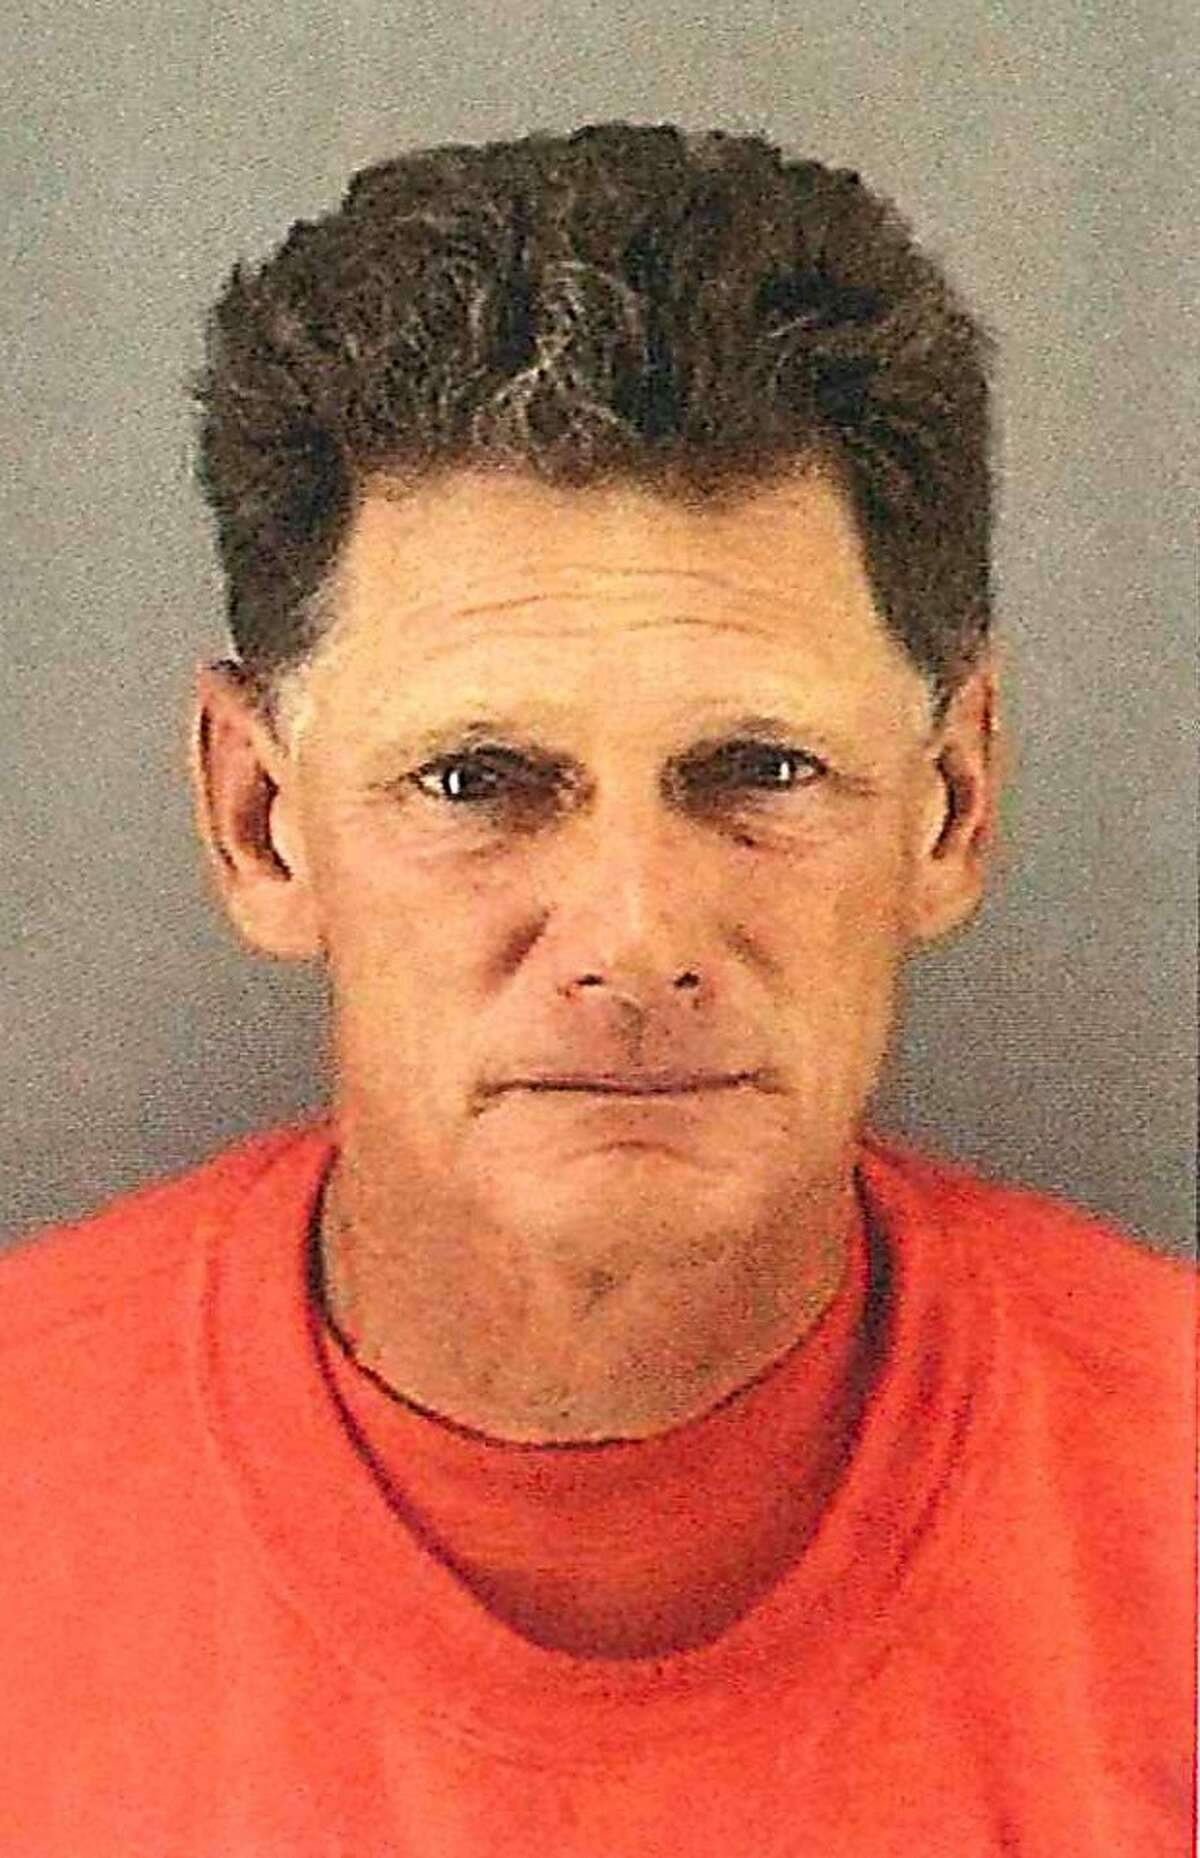 The San Francisco Police Department released this photo of Thomas Burnoski, 57, an employee of the city Recreation and Parks Department, who is accused of running over and killing 35-year-old Christine Svanemyr while she was lying on the grass at Holly Park in the Bernal Heights neighborhood, then driving away from the scene in his city-owned truck.